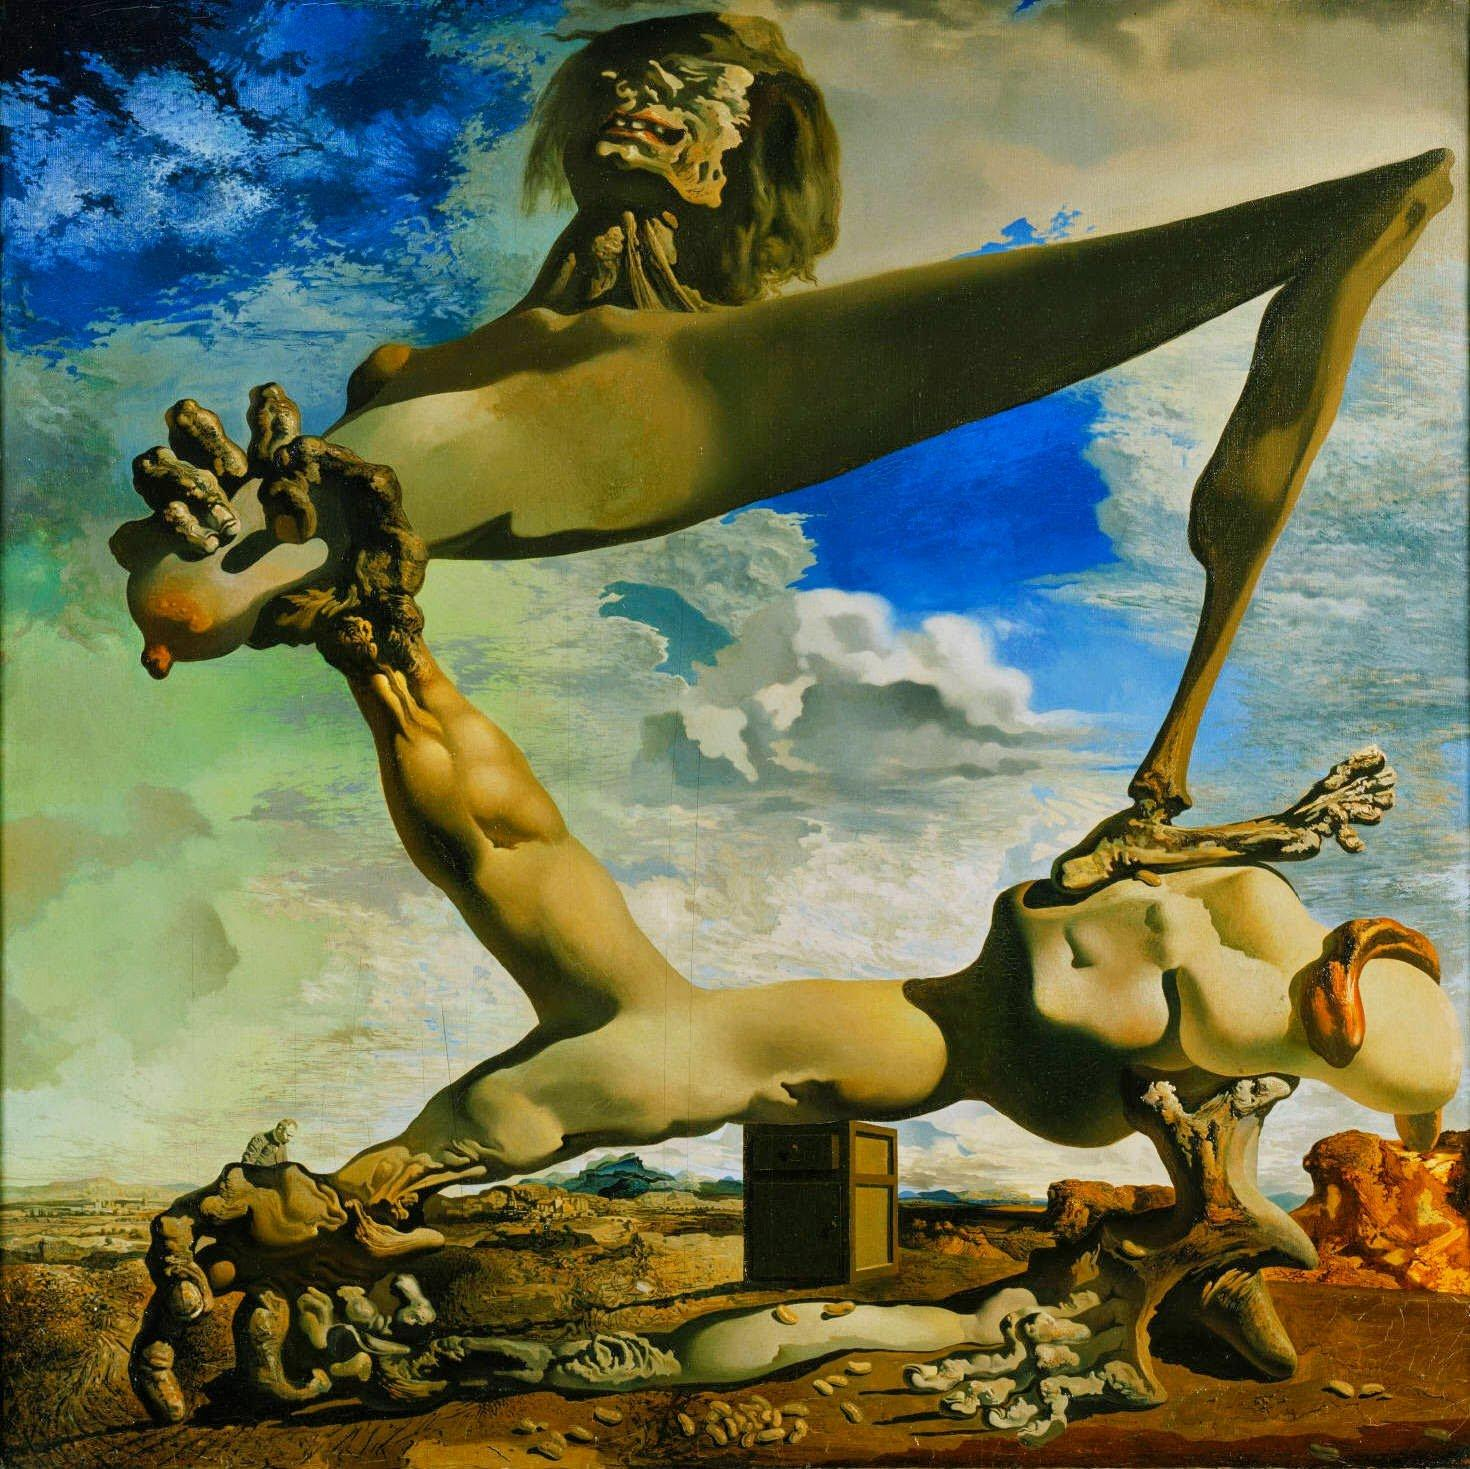 Salvador Dali Paintings: Revisiting 10 Of His Greatest Paintings